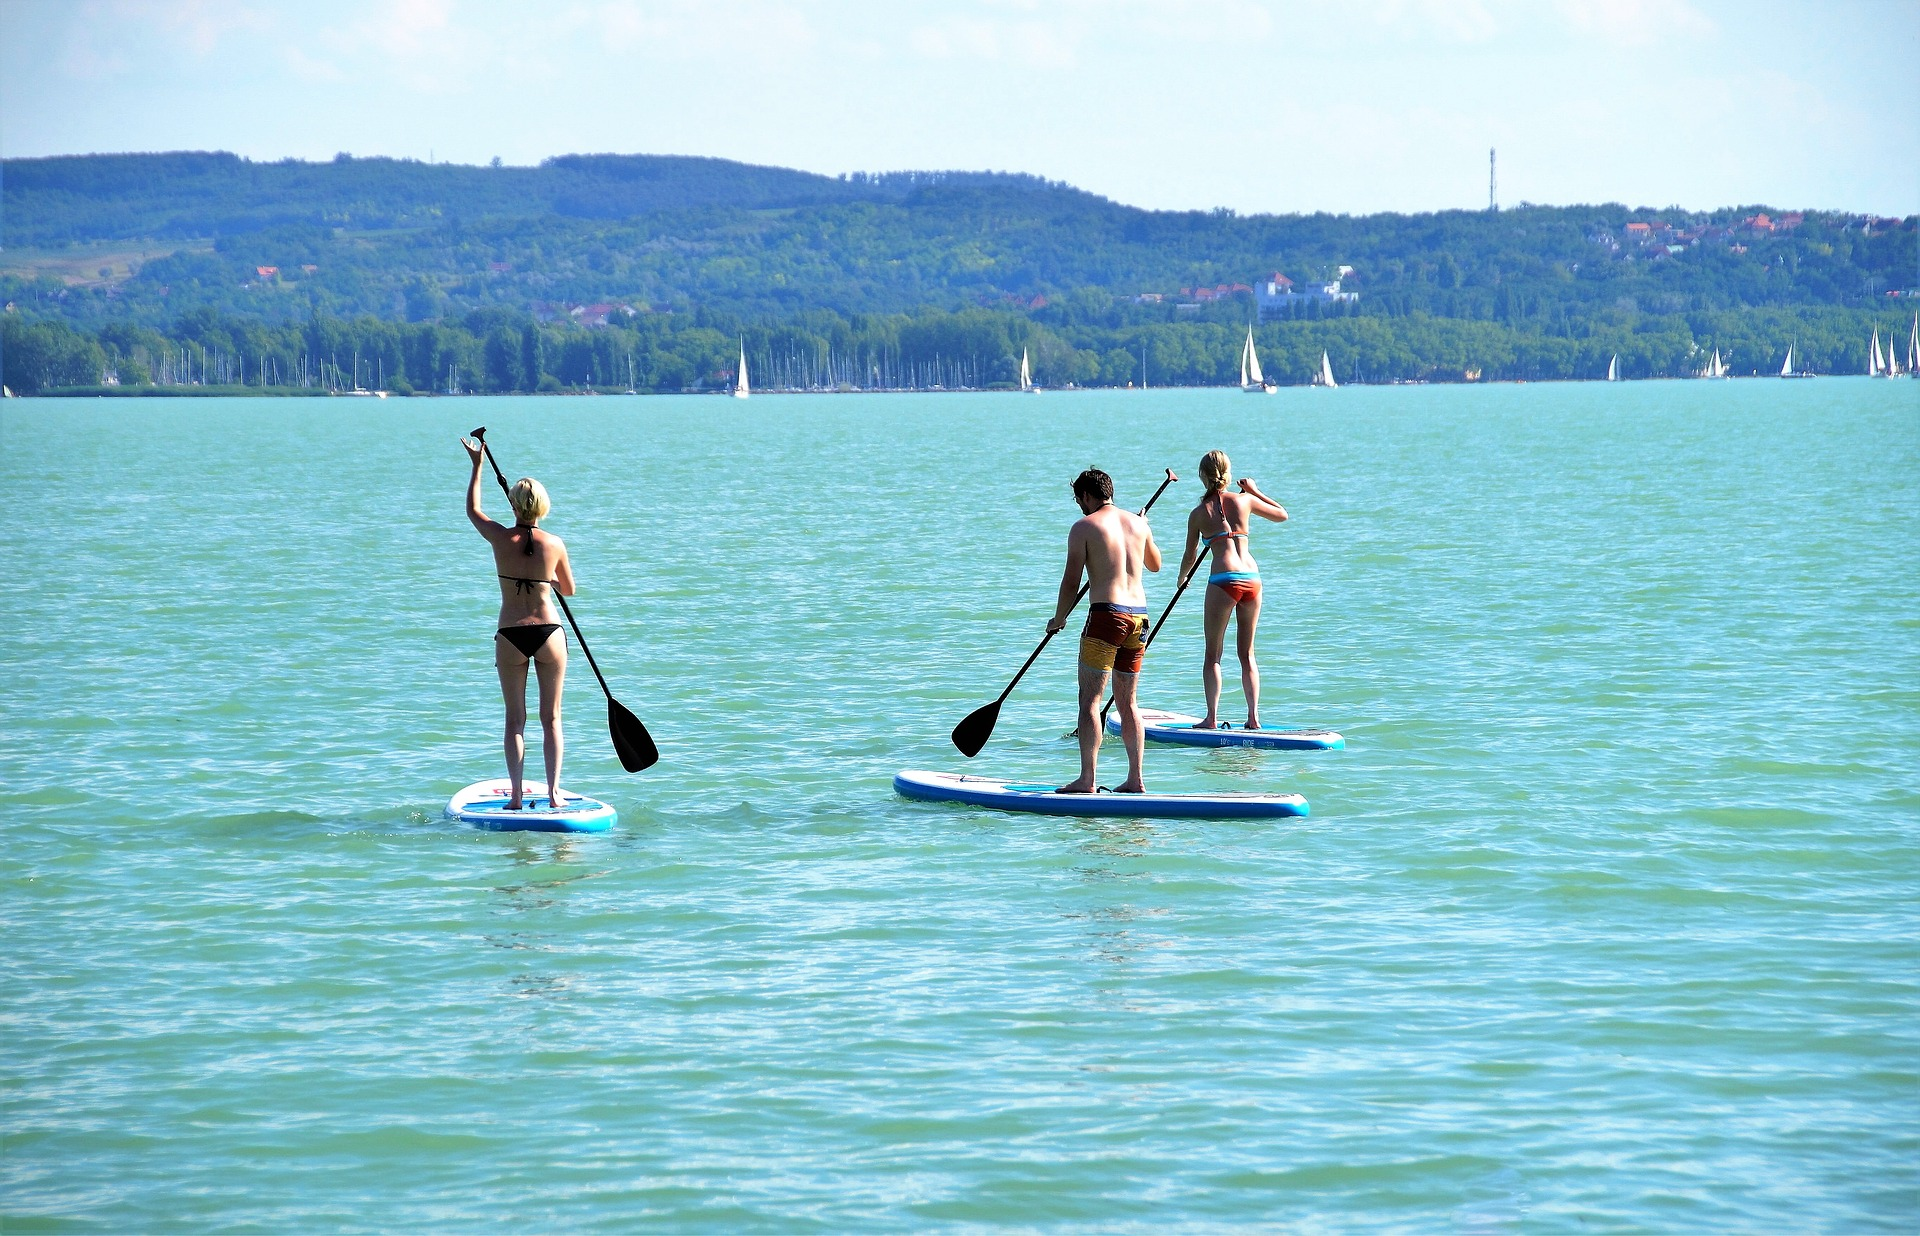 stand-up-paddle-1545481_1920.jpg